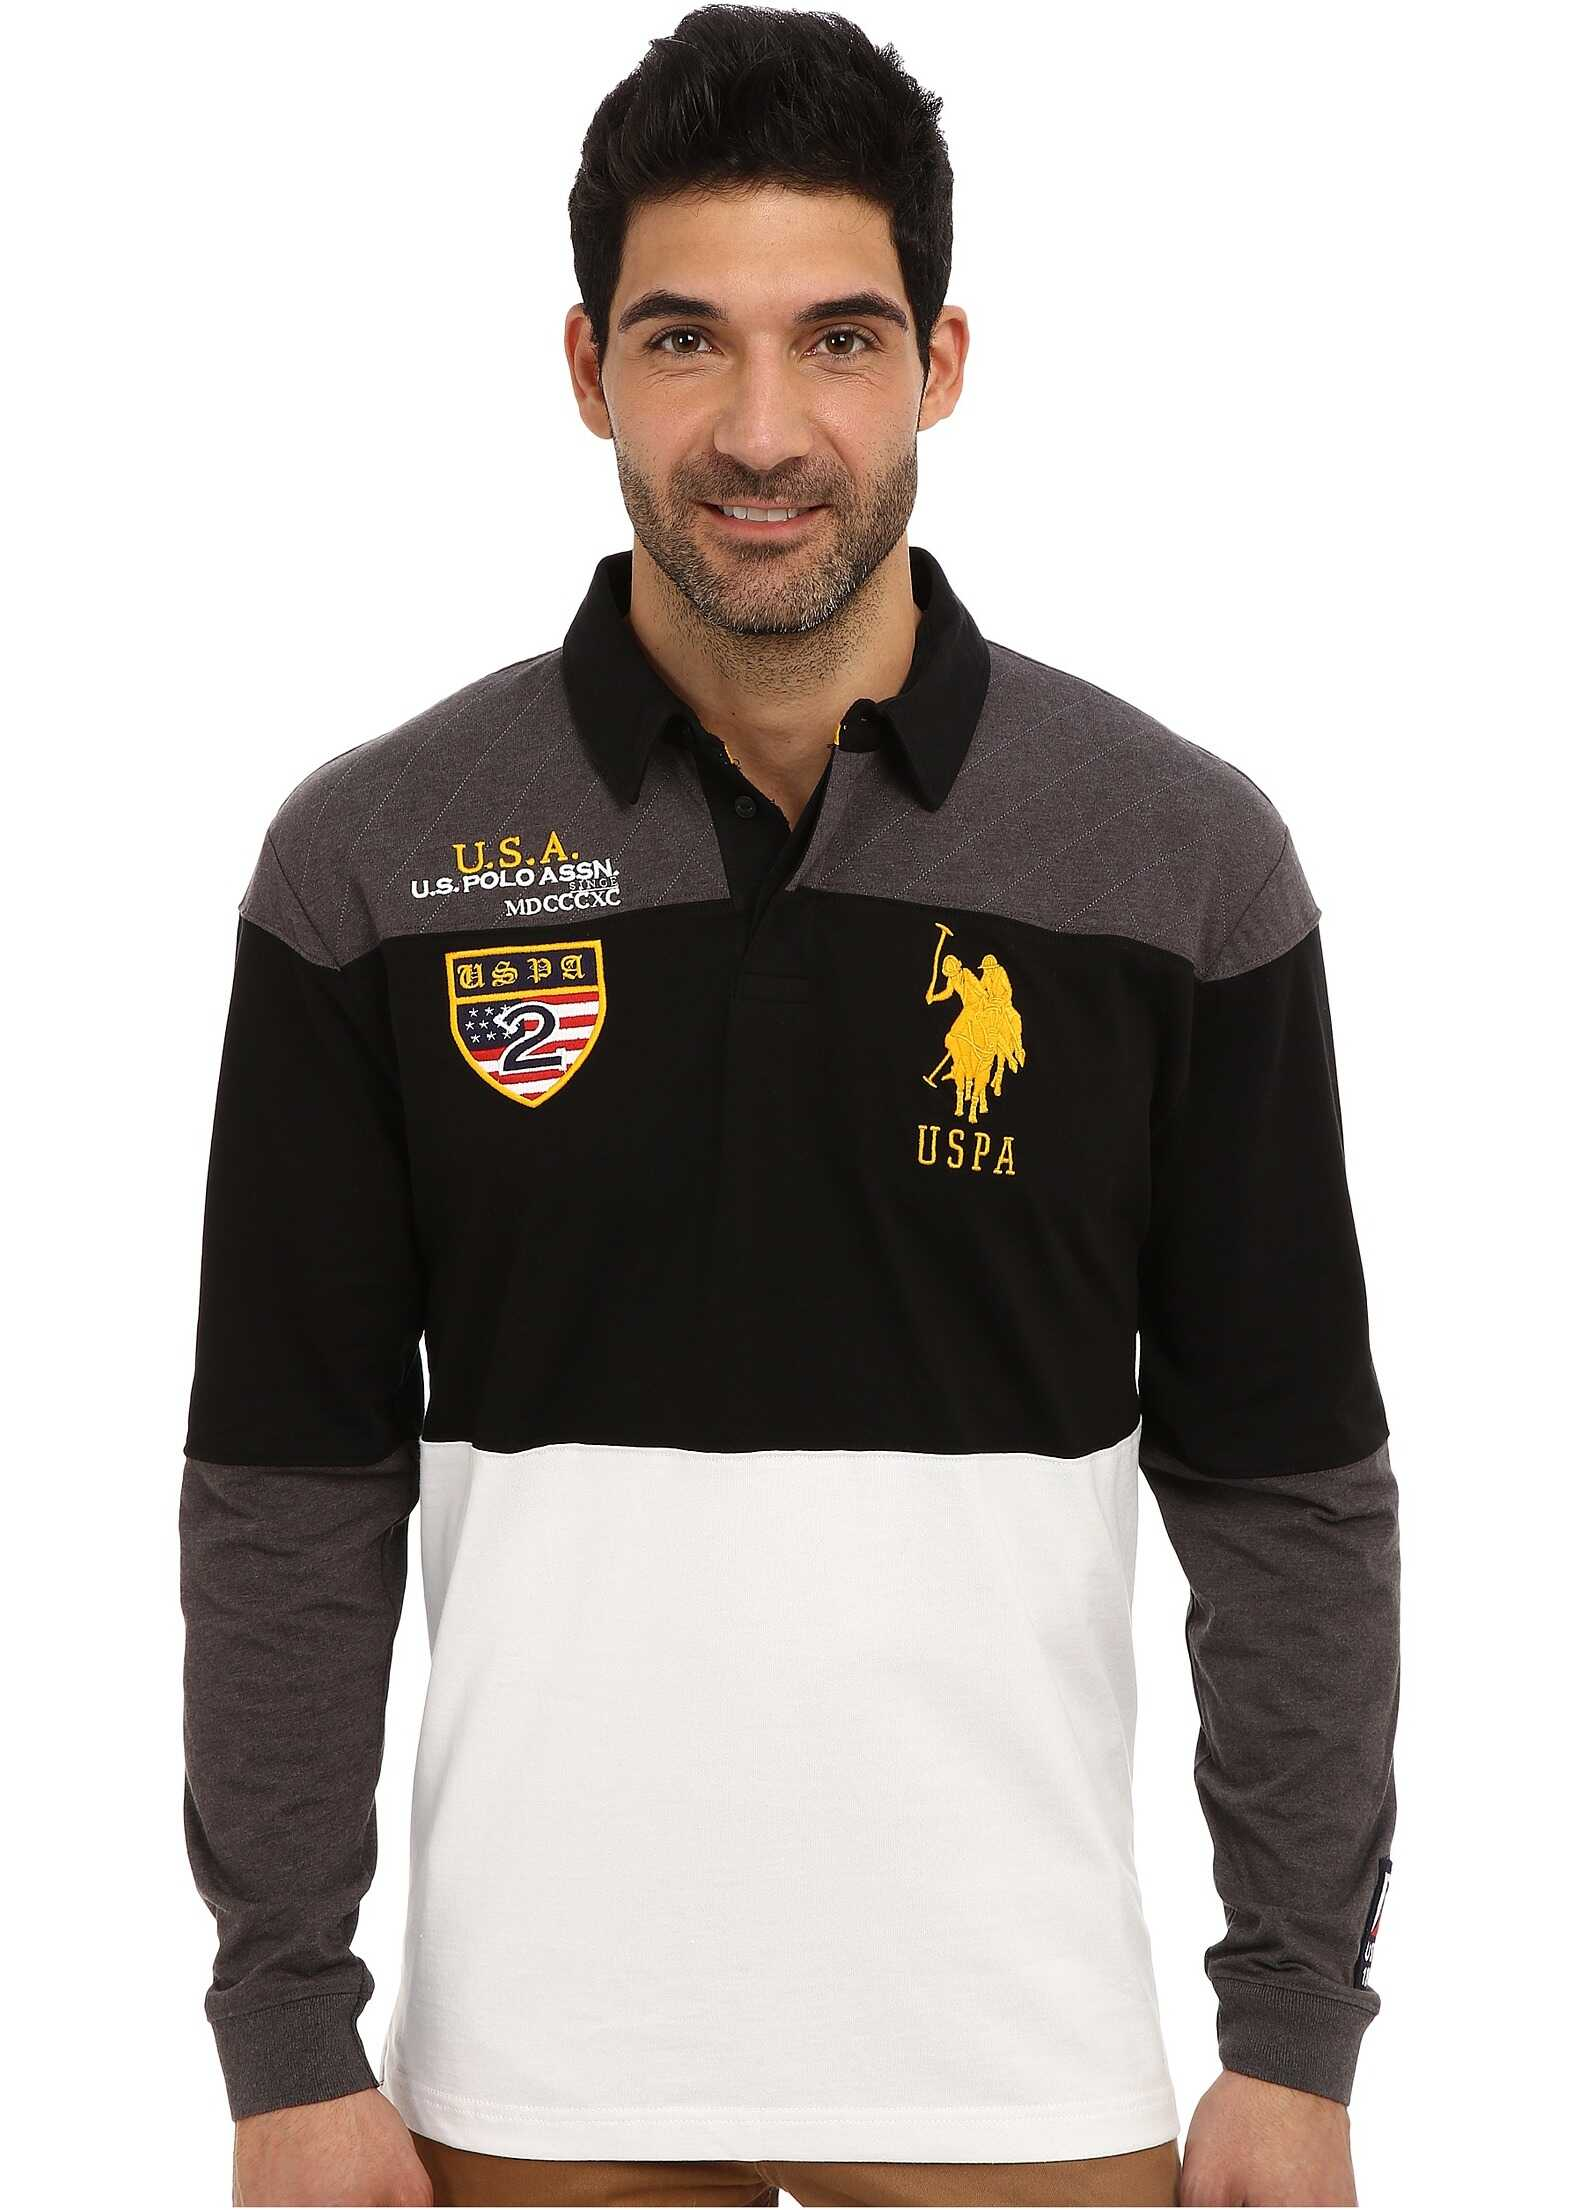 U.S. POLO ASSN. Jersey Color Block Rugby Polo Heather Dark Gray